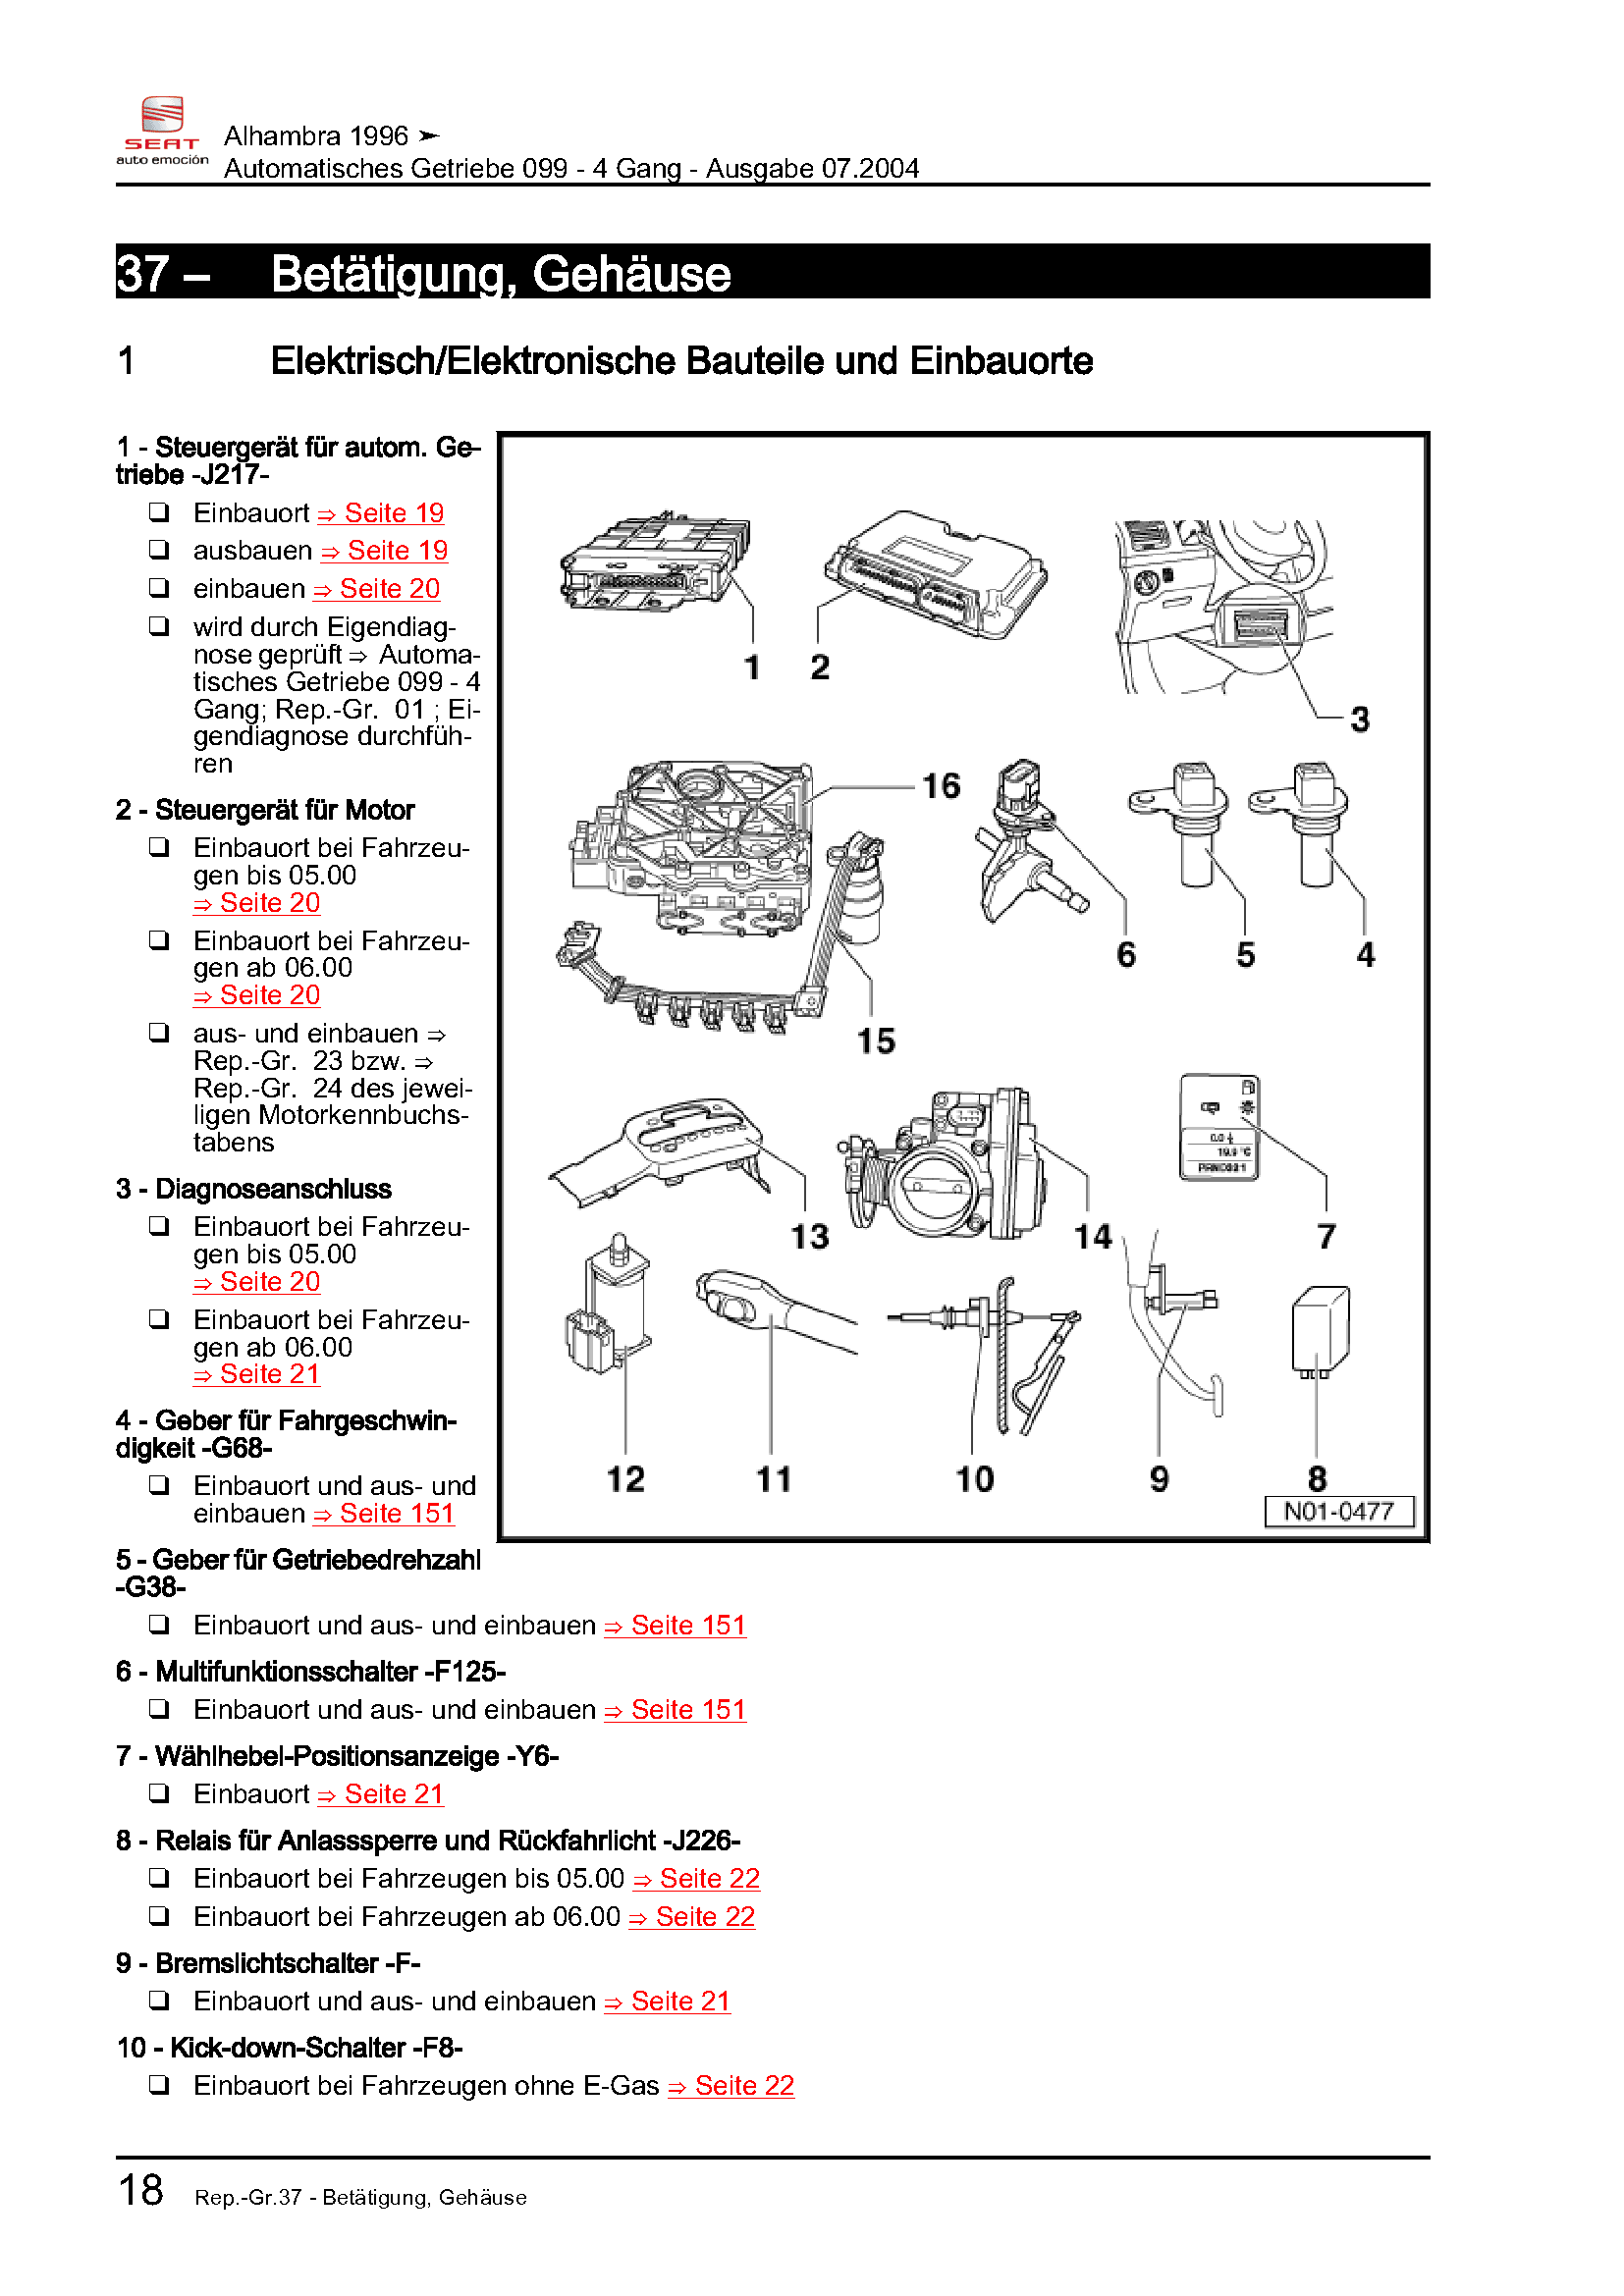 sea-alhambra-7v8-014_automatisches_getriebe_099_4_gang_1.png